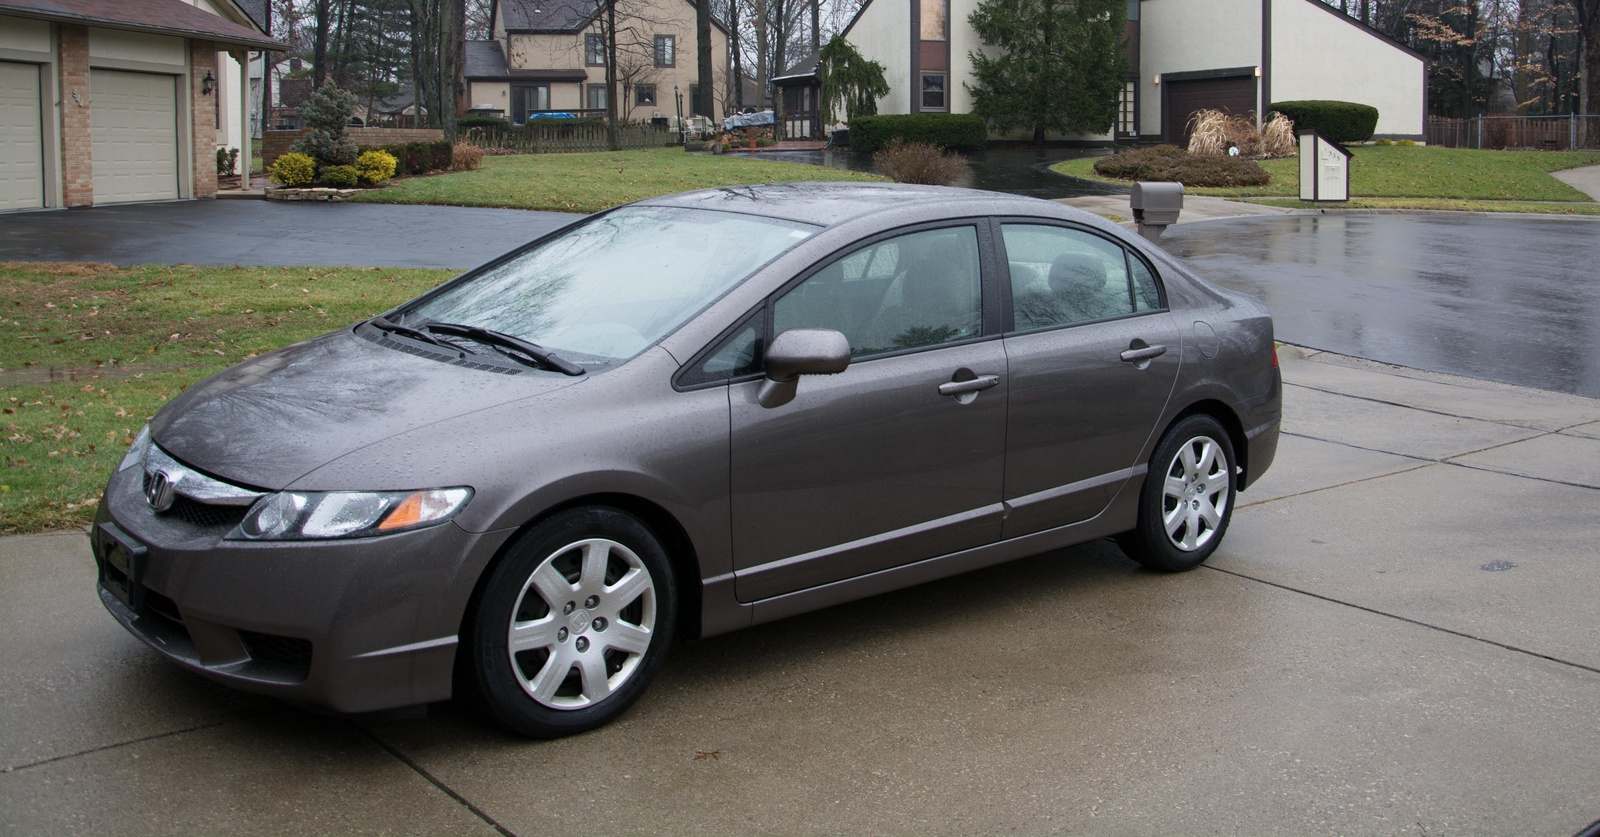 used honda civic for sale columbus oh cargurus. Black Bedroom Furniture Sets. Home Design Ideas